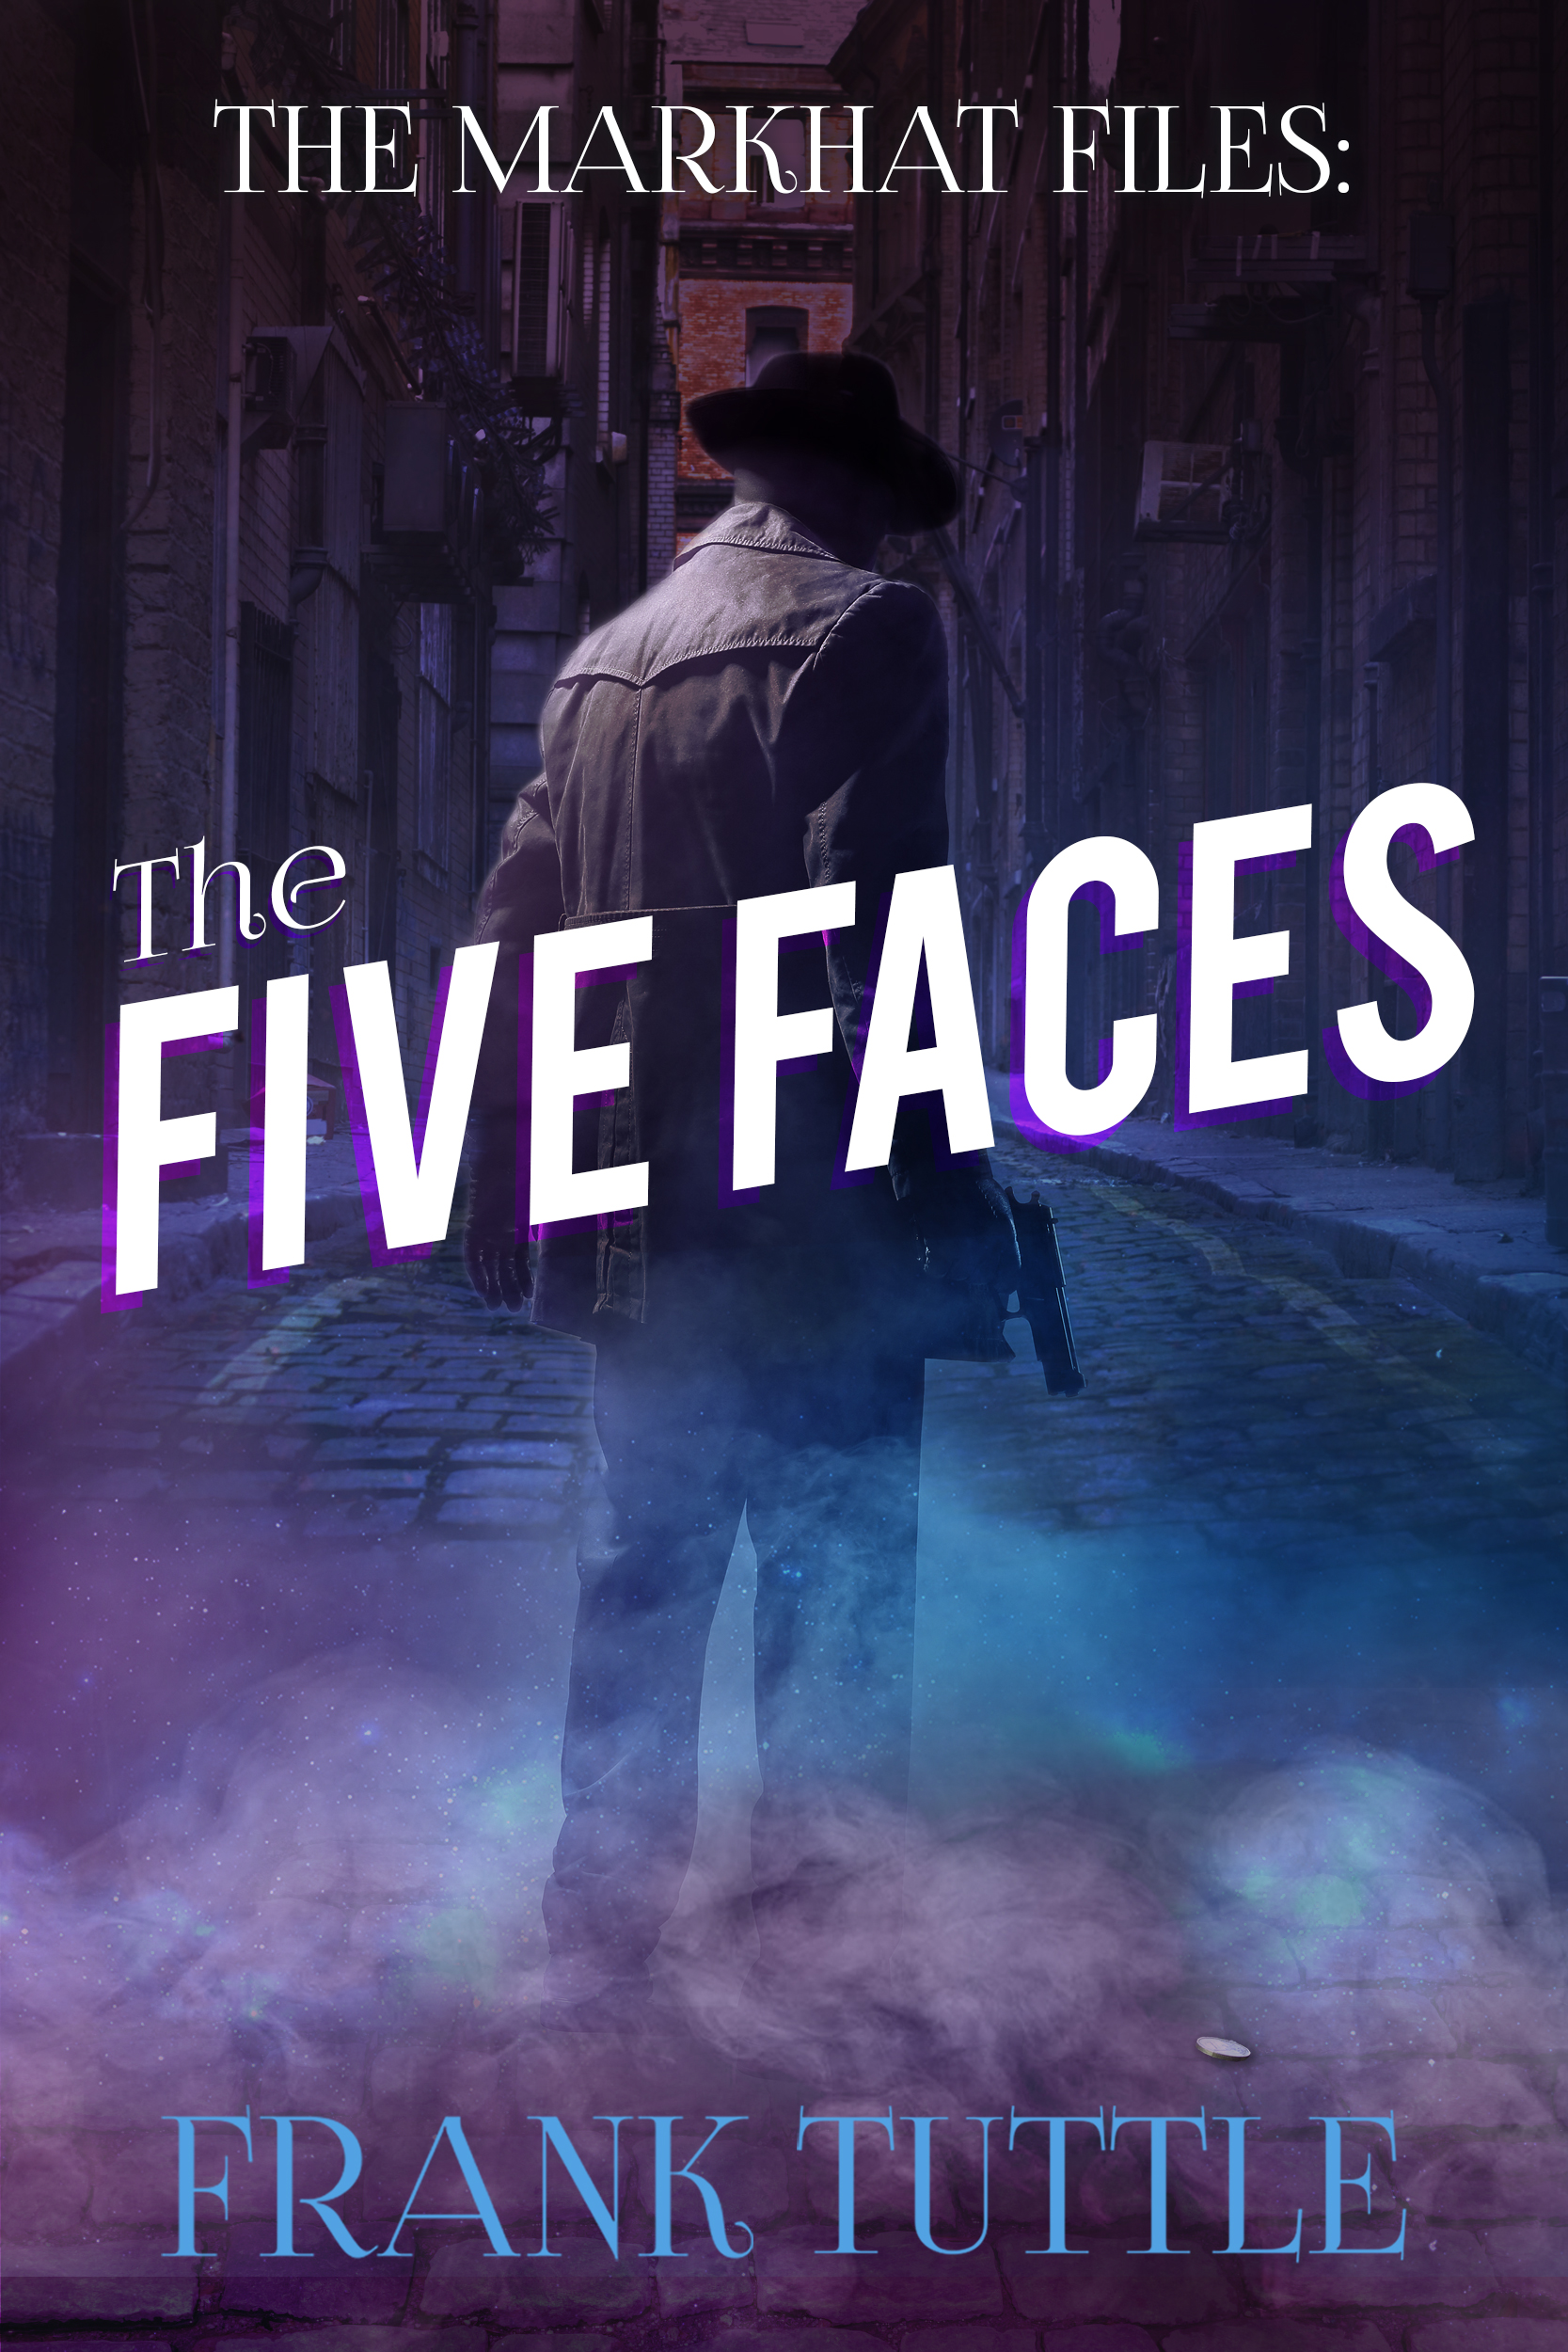 [FT-2017-002]-FT-The-Five-Faces-E-Book-Cover_1667x2500.jpg